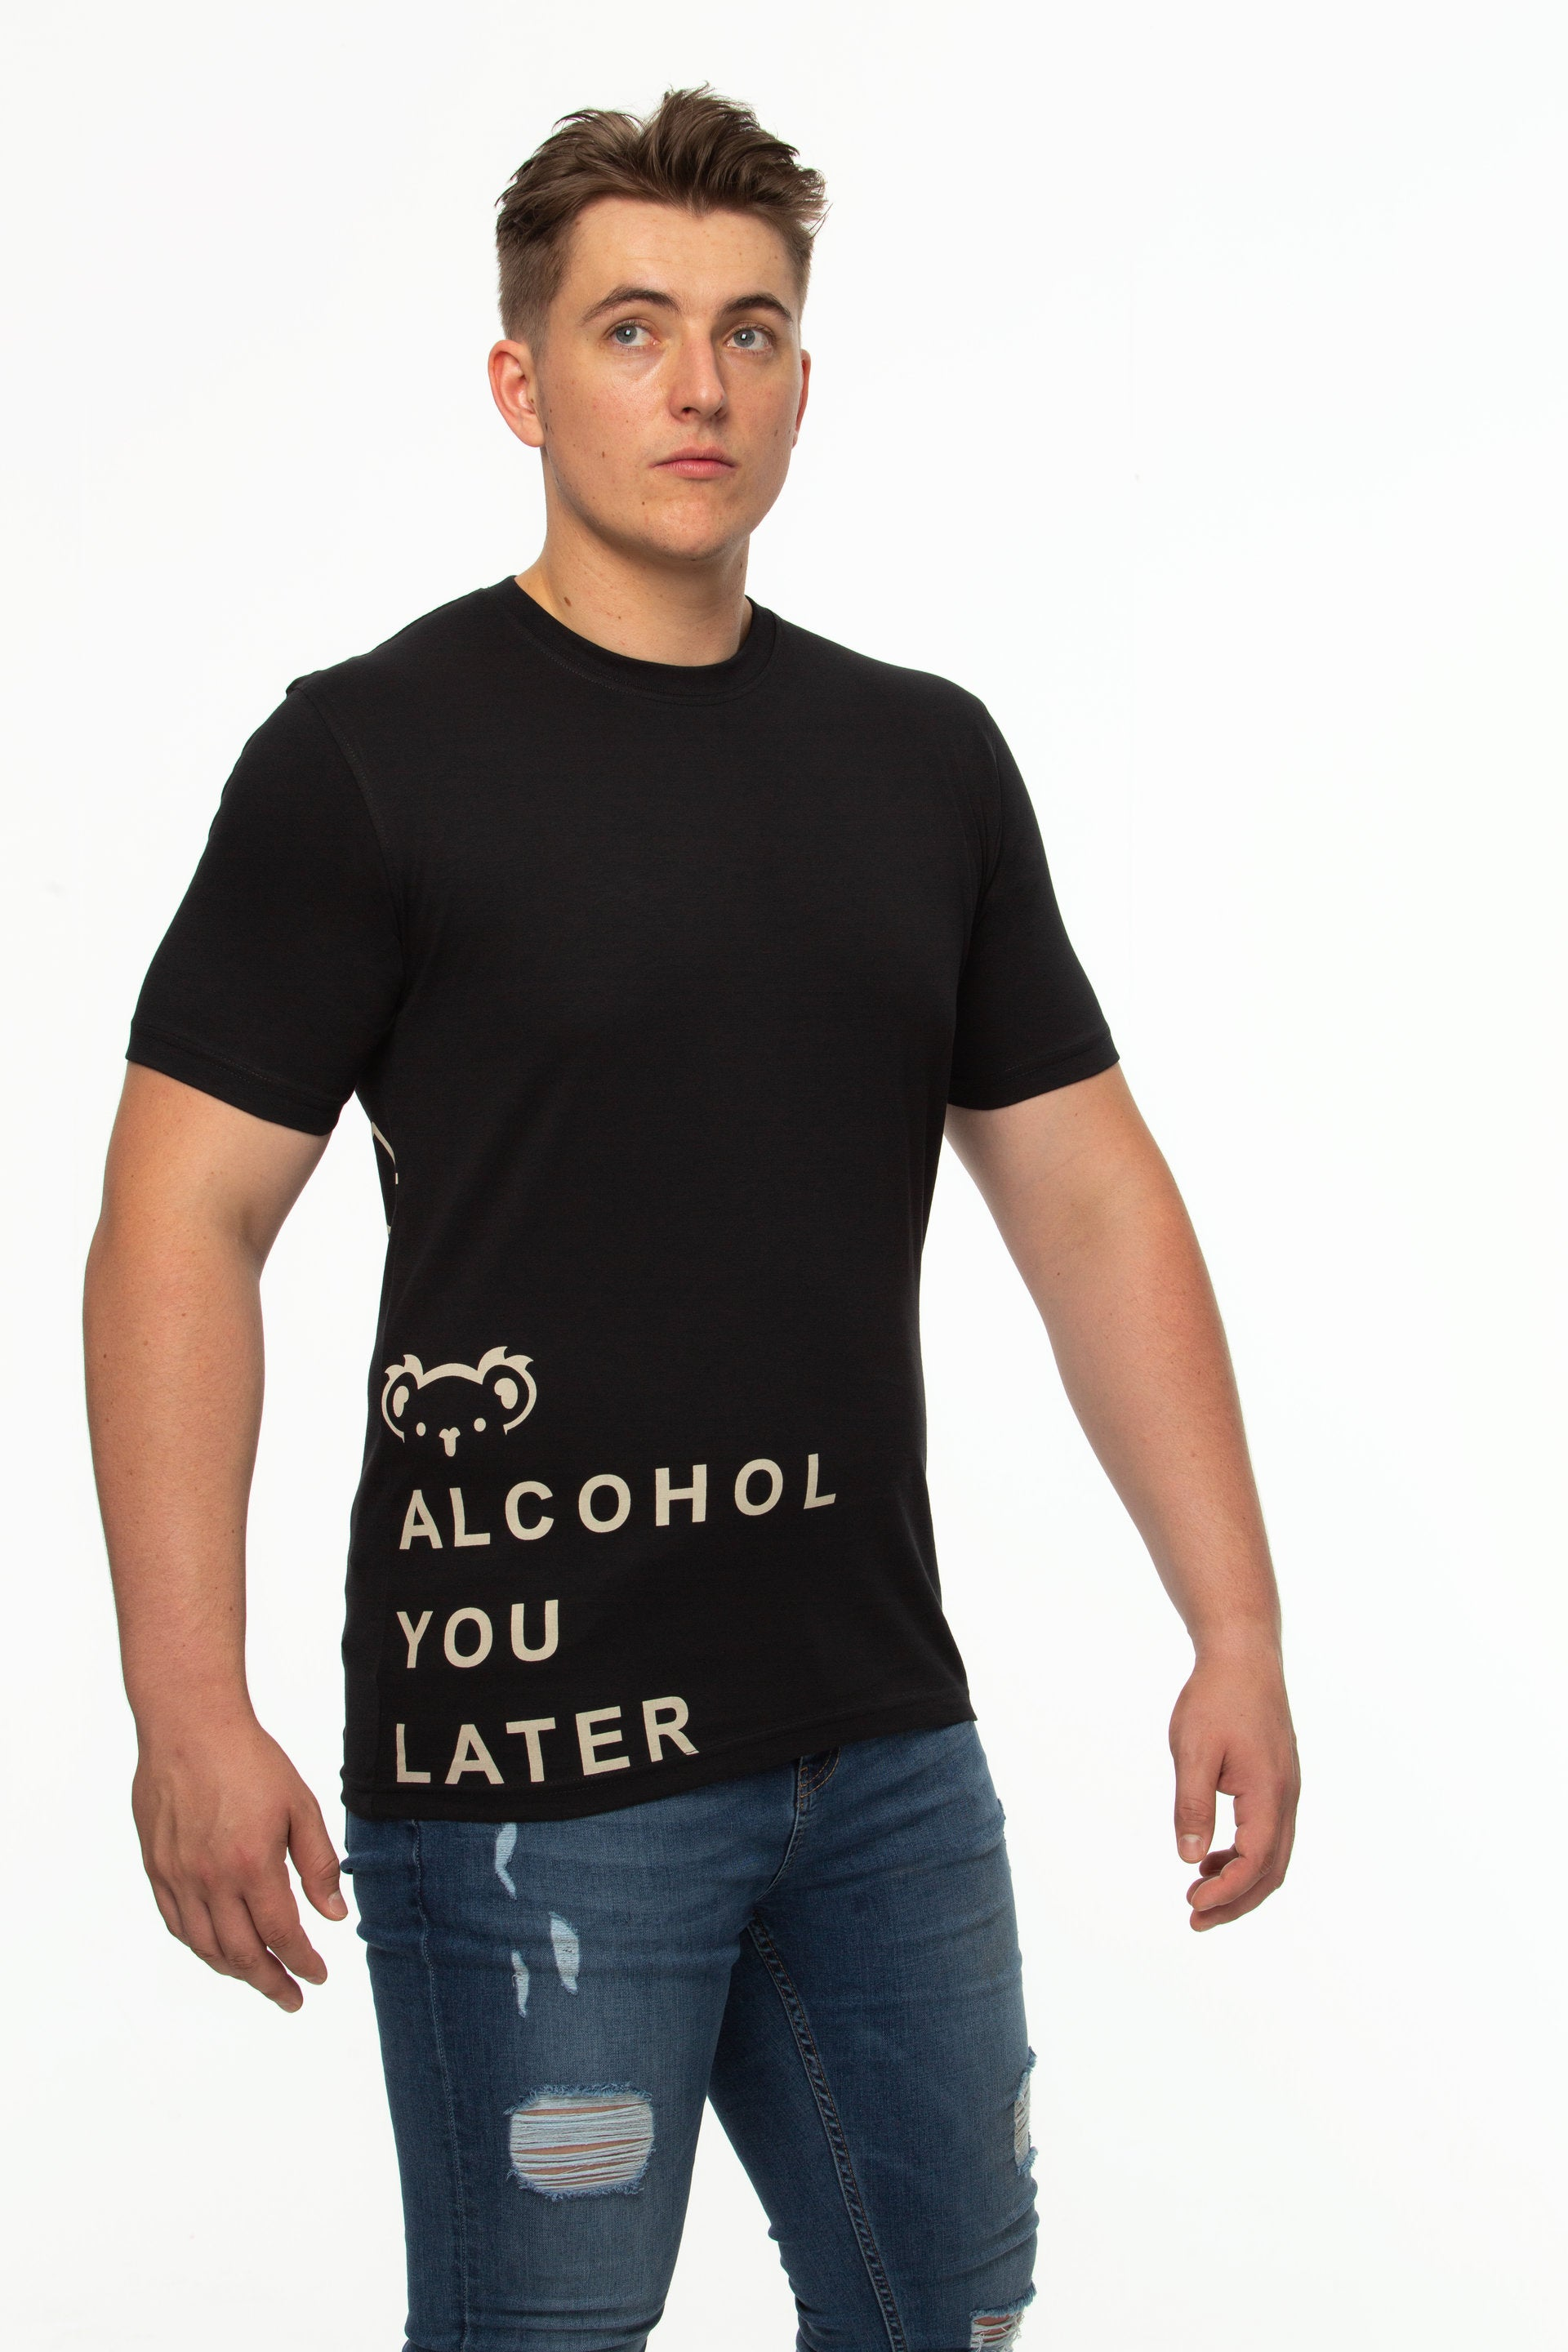 Tipsy Koala Men's Printed Cotton T Shirt - Alcohol